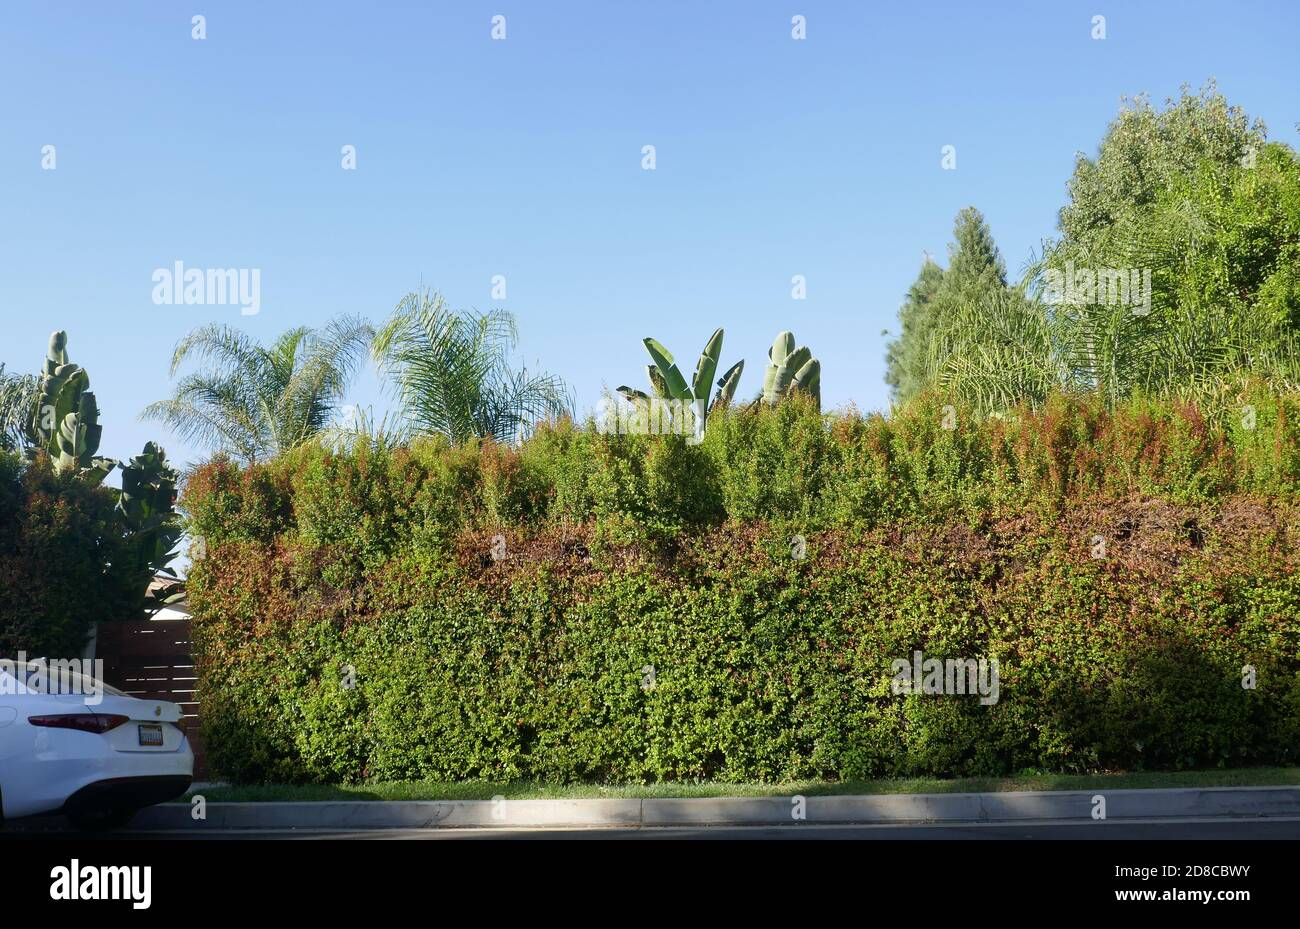 Tarzana, California, USA 28th October 2020 A general view of atmosphere of Lisa Marie Presley's former home at 18531 Wells Drive on October 28, 2020 in Tarzana, California, USA. Photo by Barry King/Alamy Stock Photo Stock Photo